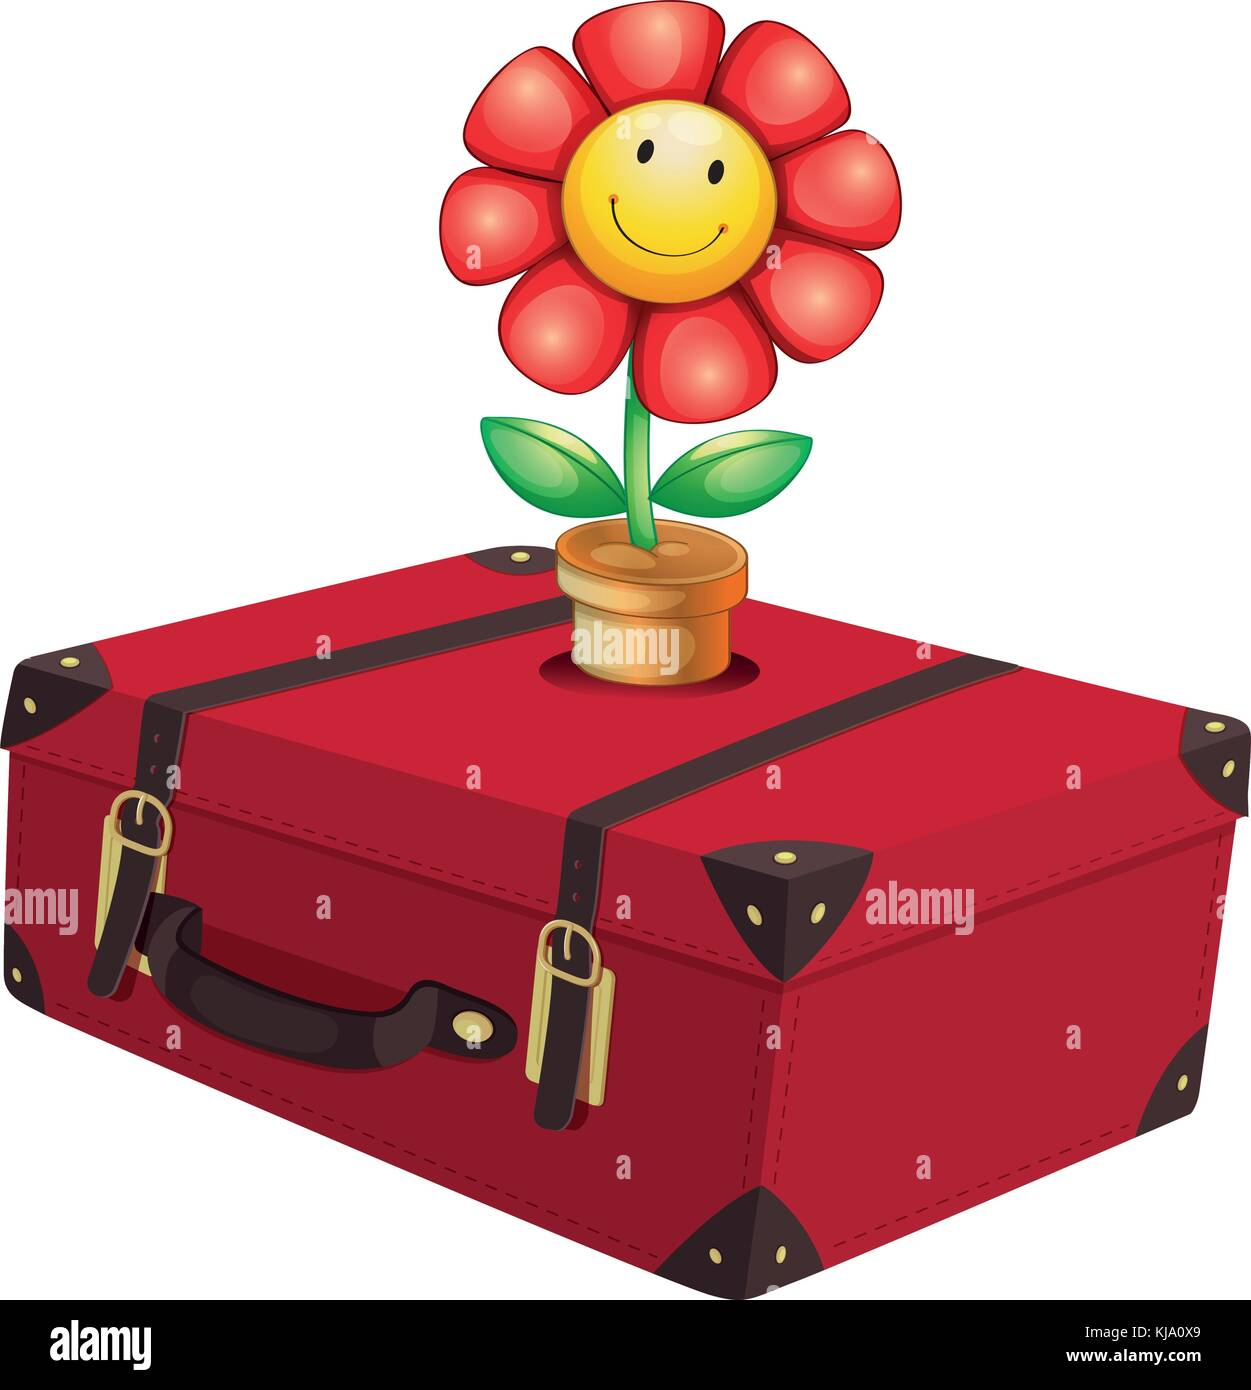 Illustration of a red travelling bag with a plant on a white background - Stock Vector